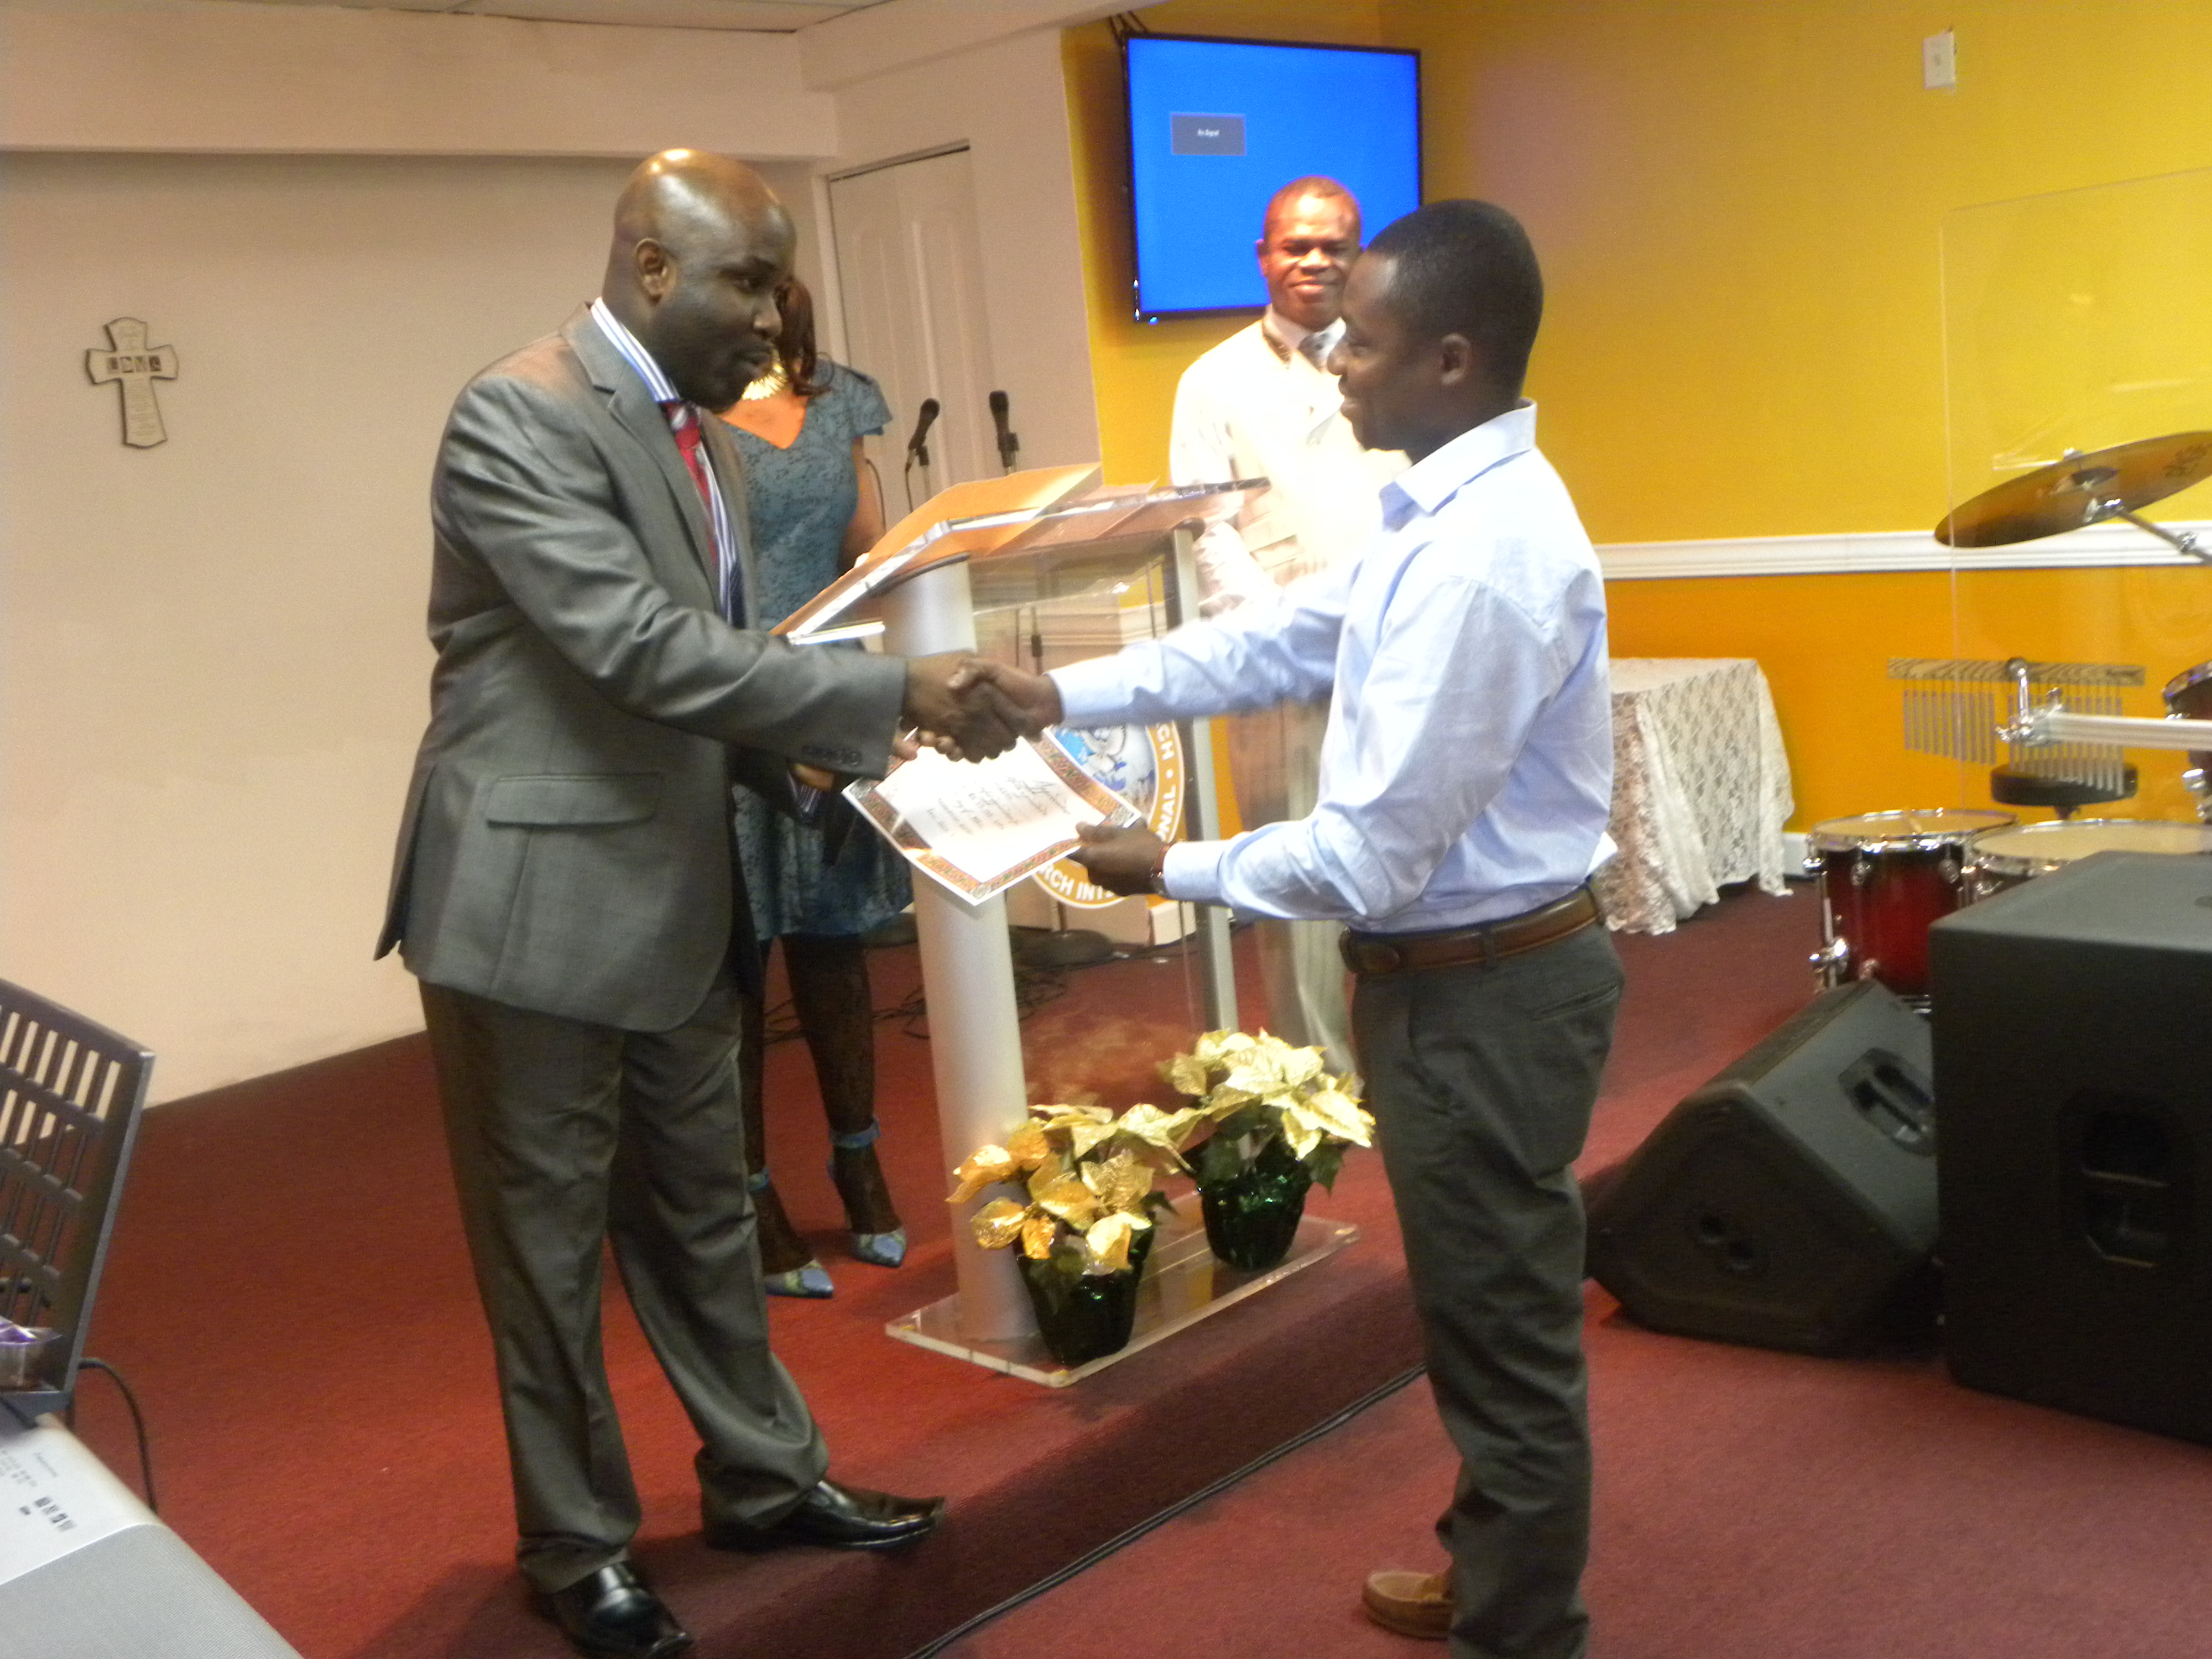 Appreciation - Serv. to the LORD